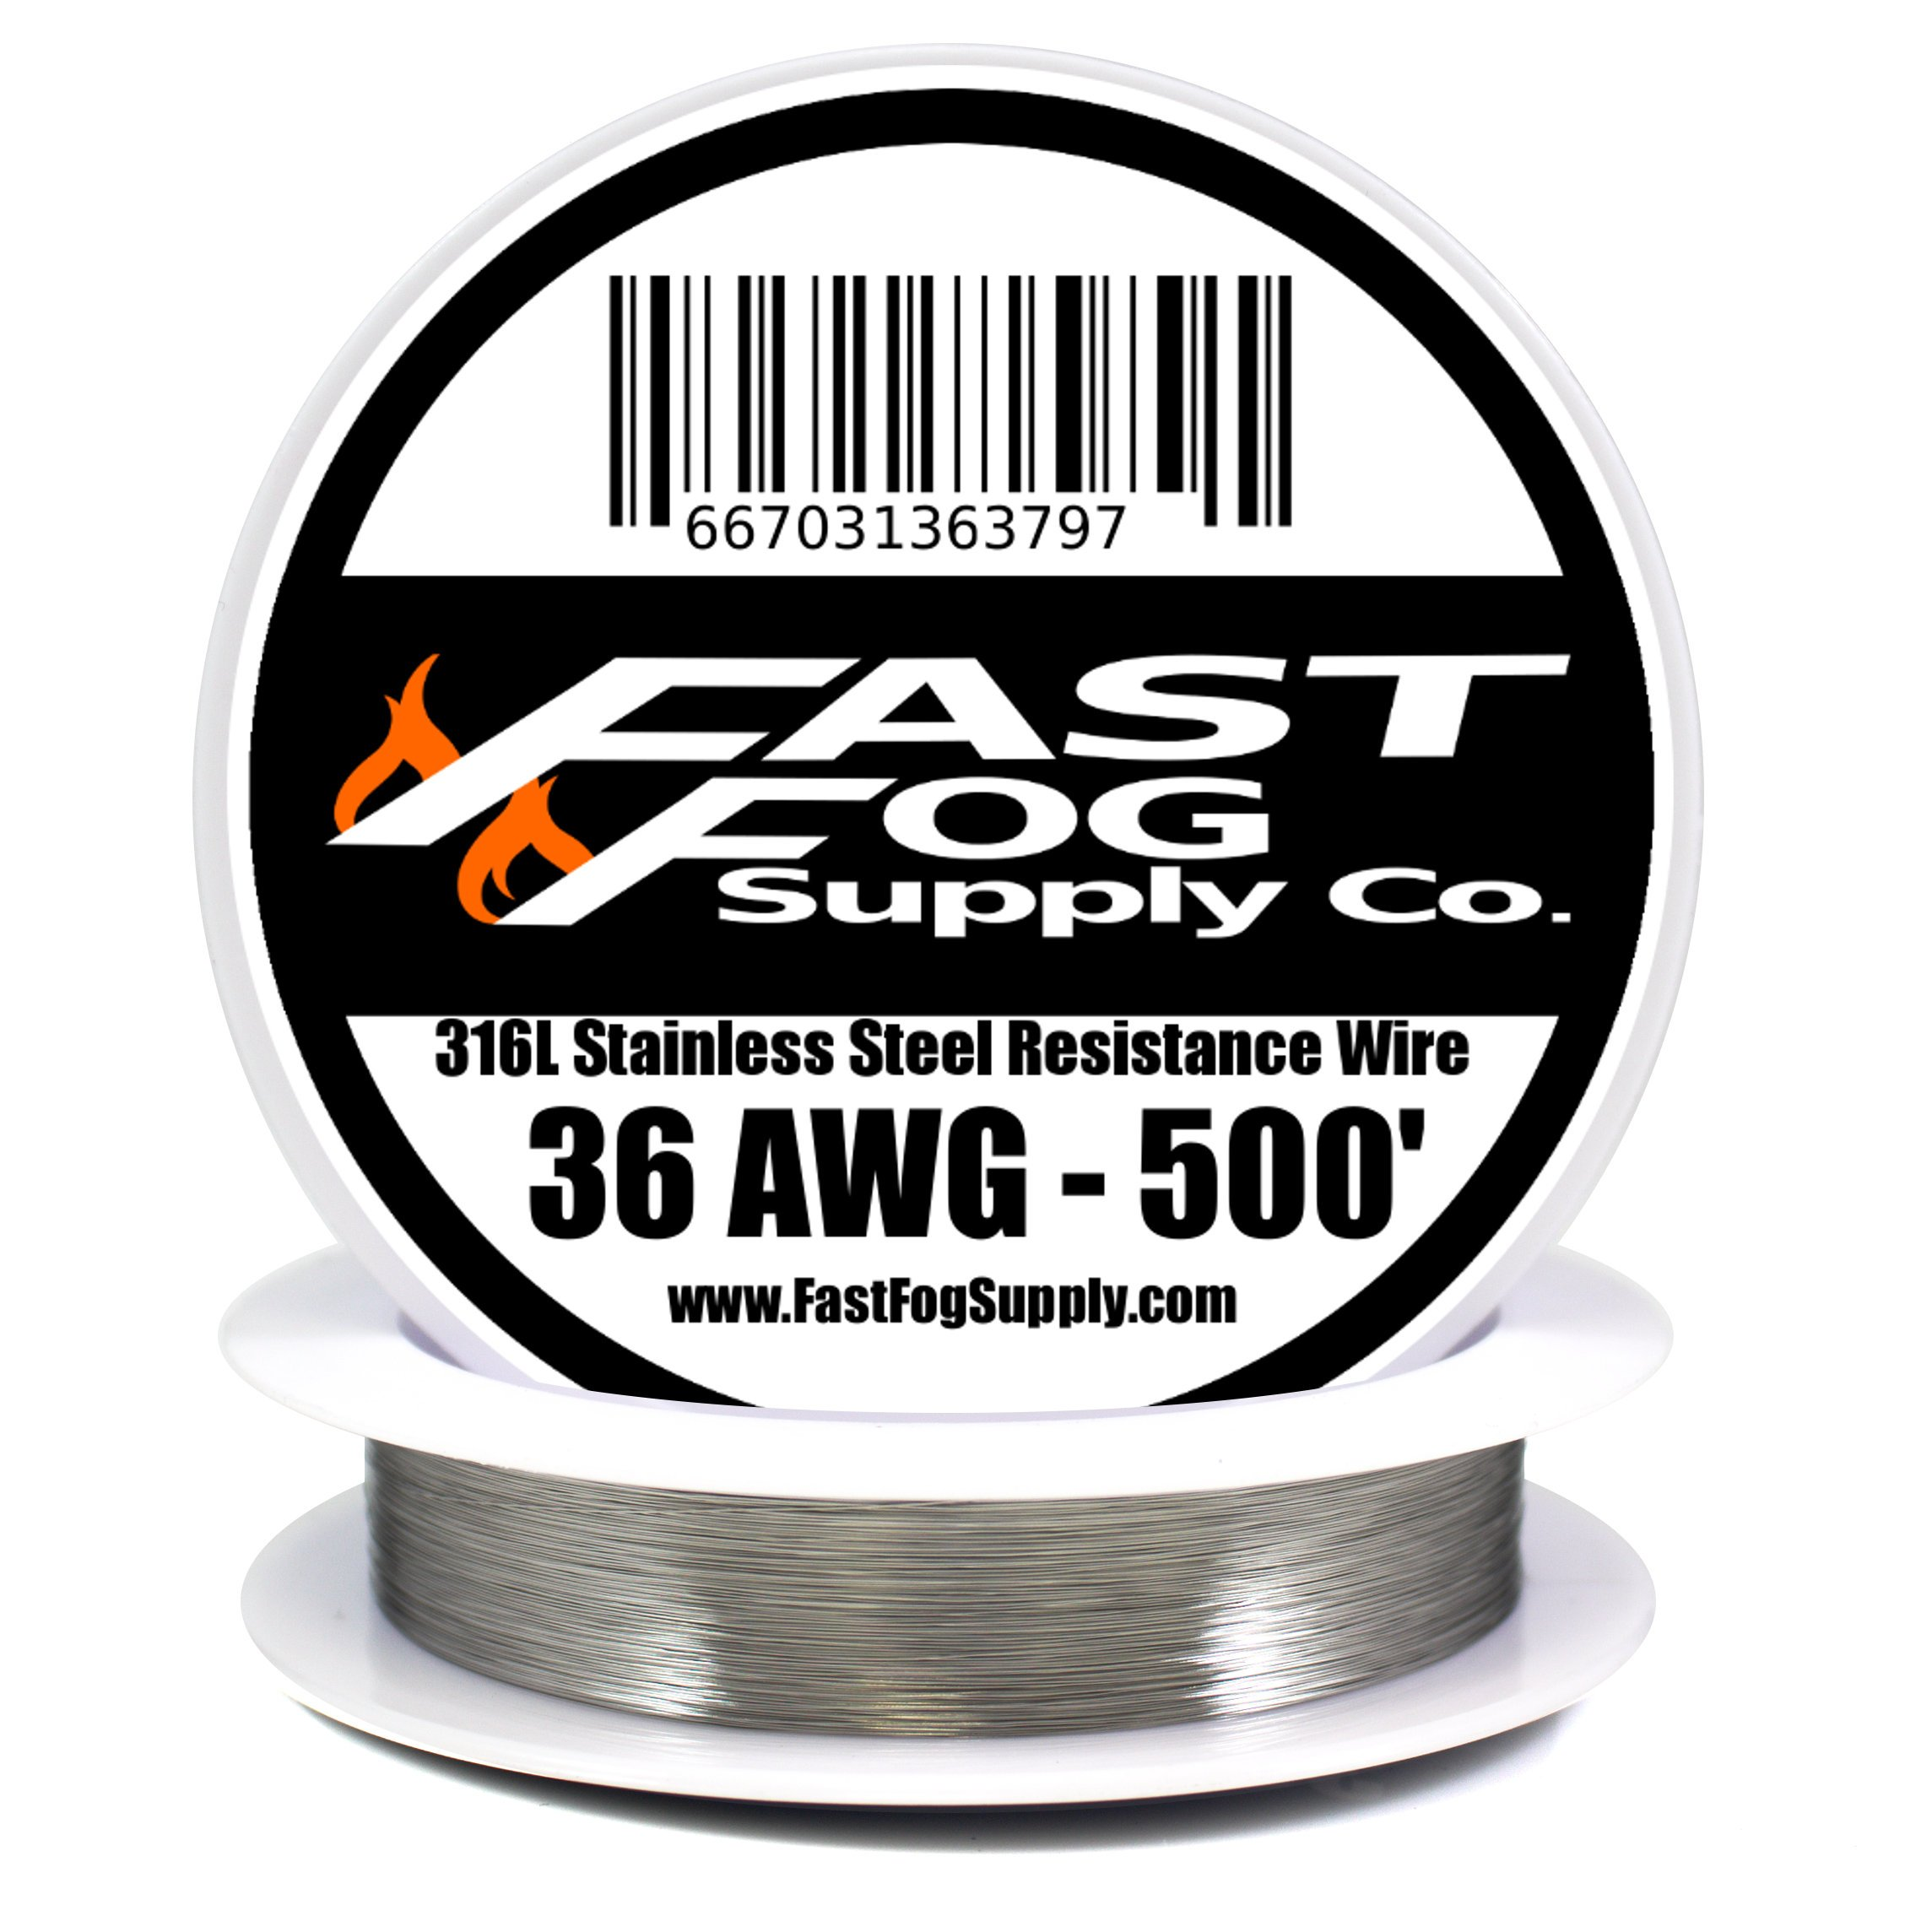 Fast Fog 500 ft - 36 Gauge AWG Stainless Steel 316L Wire 500' Length